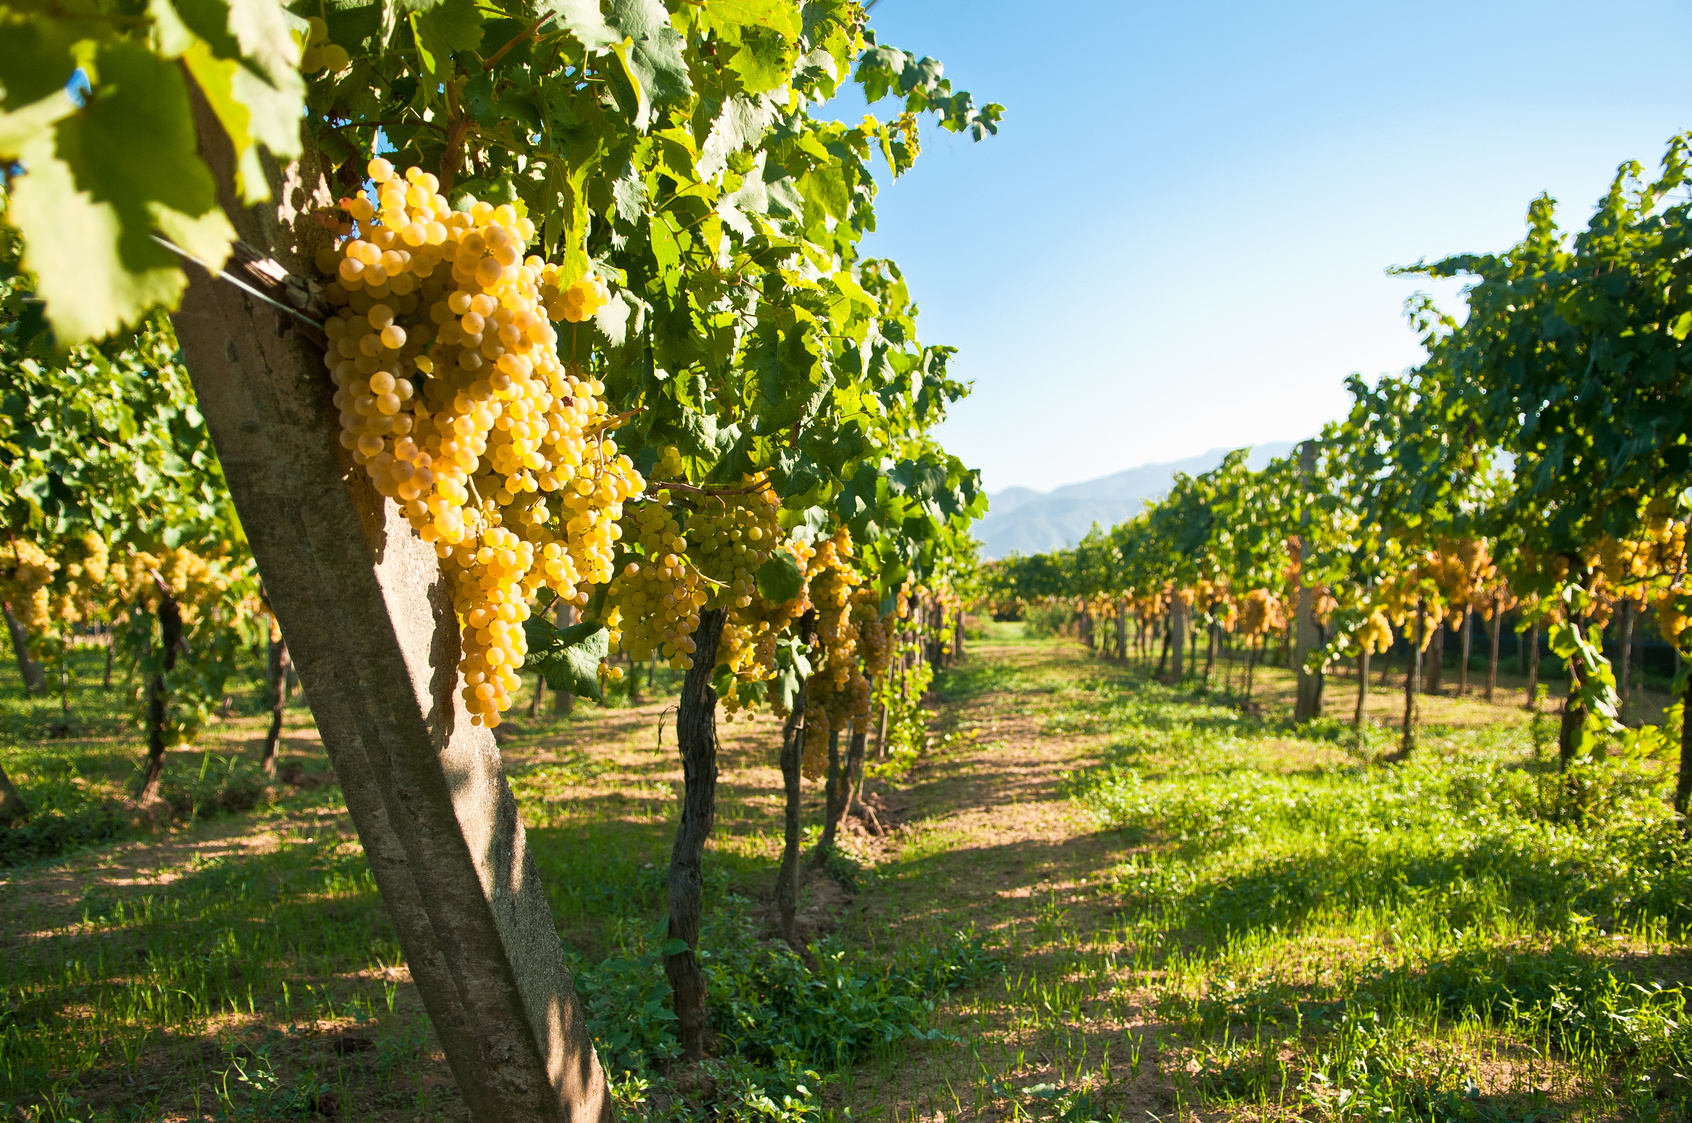 Green grapes ready for harvest in a italian vineyard